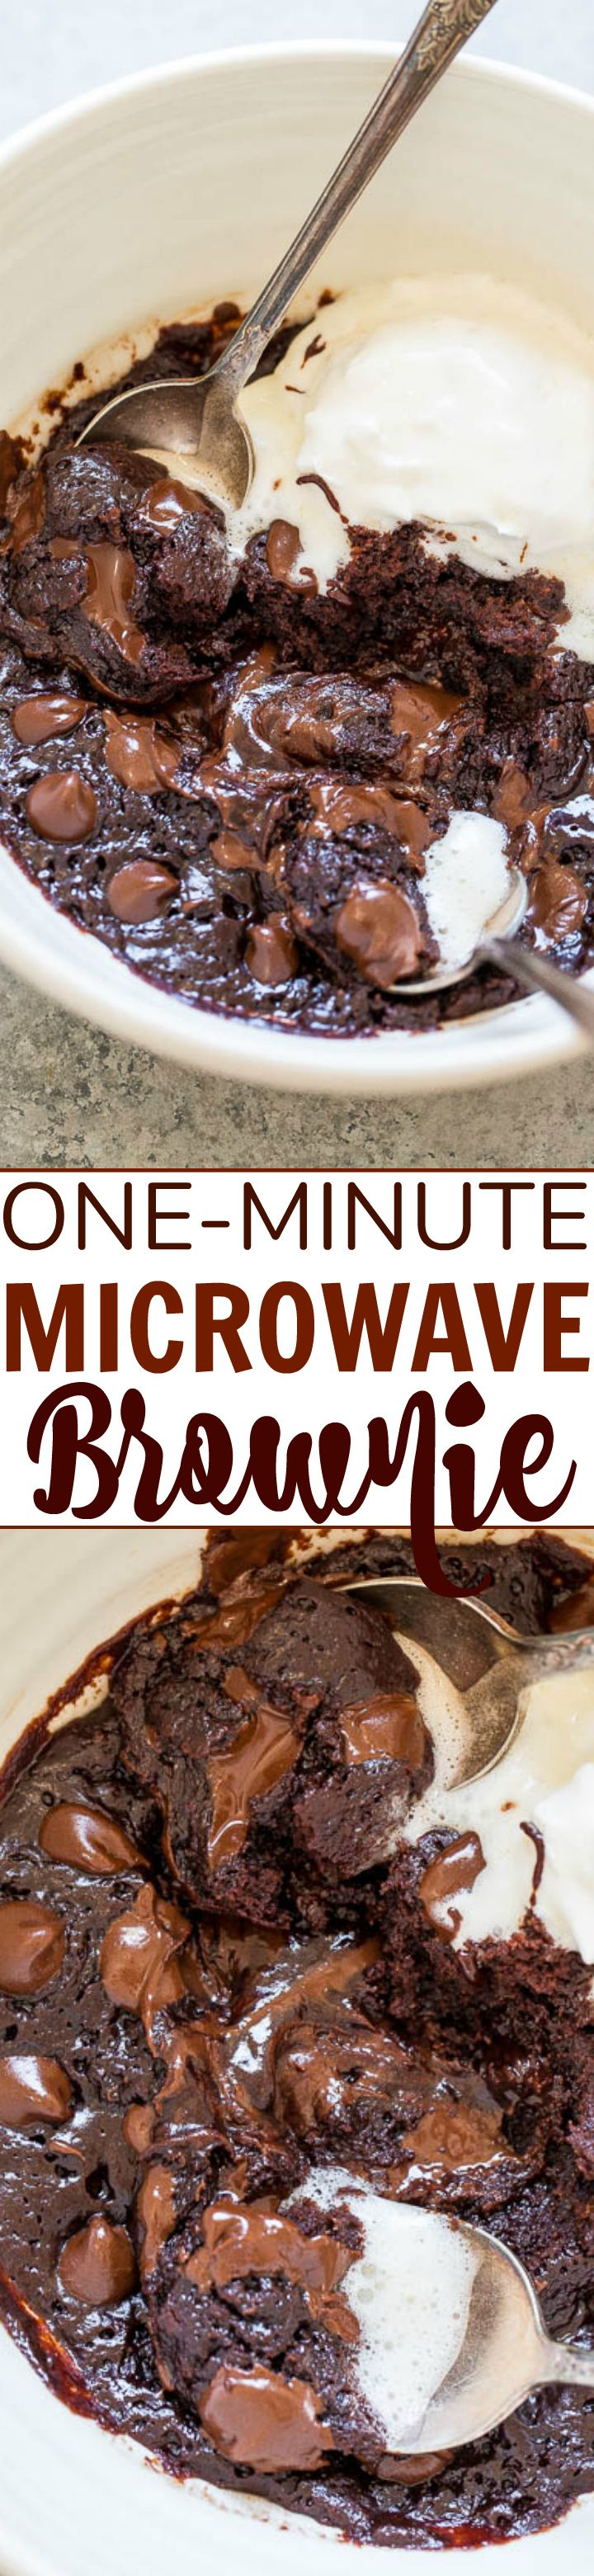 One-Minute Microwave Brownie — When chocolate cravings strike, make this EASY brownie recipe in one bowl, without a mixer, and it's ready in ONE MINUTE!! Rich, FUDGY, decadent, and accidentally vegan!! (no dairy, no butter, no eggs!)